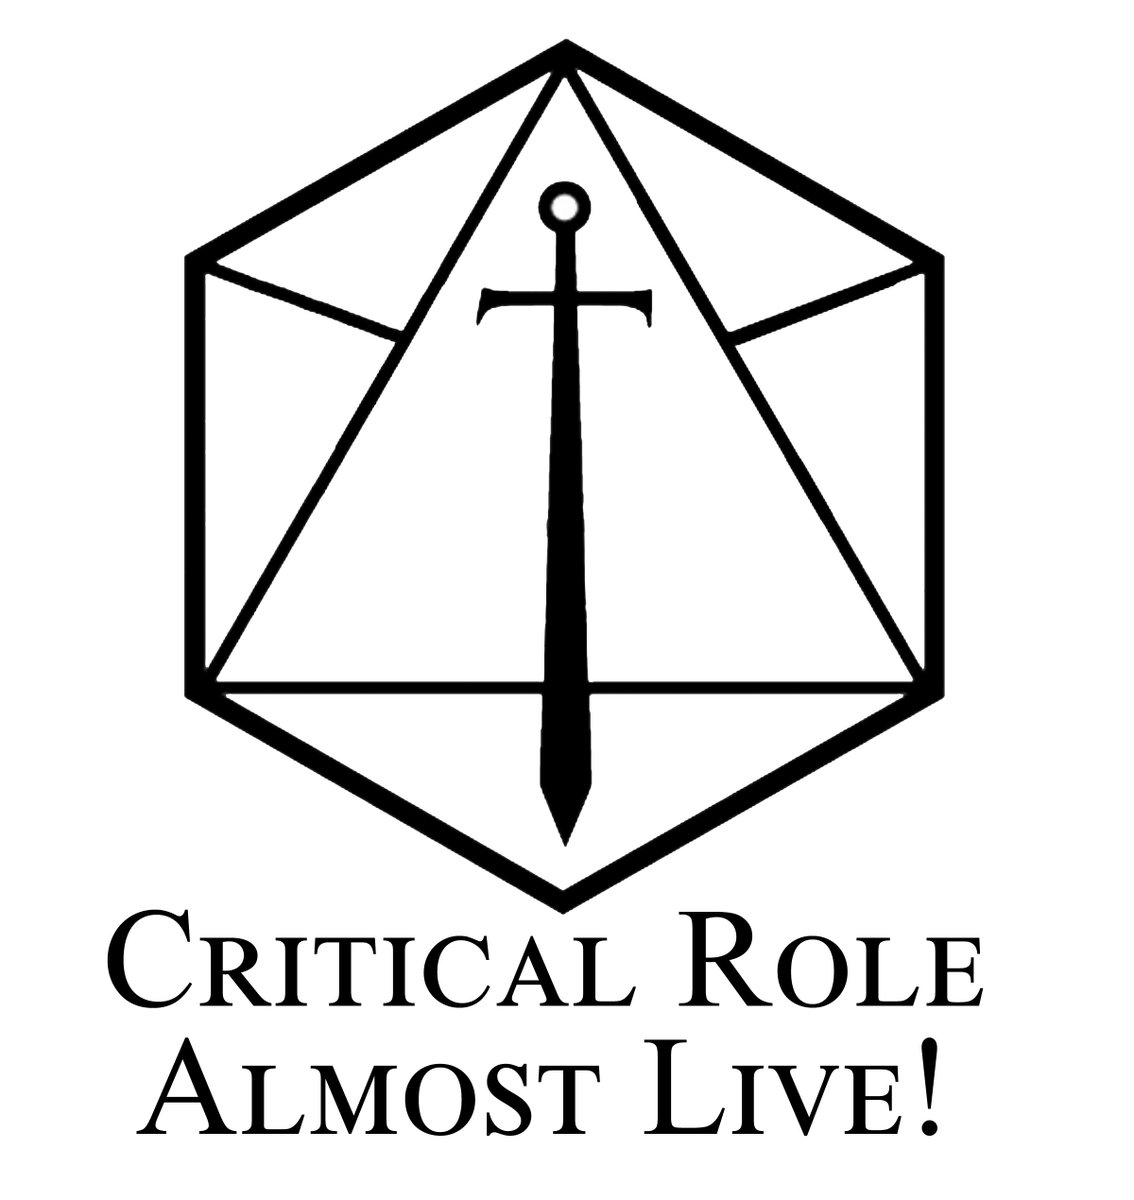 Critical Role Reddit Rcriticalrole Twitter Critical role fan art gallery: critical role reddit rcriticalrole